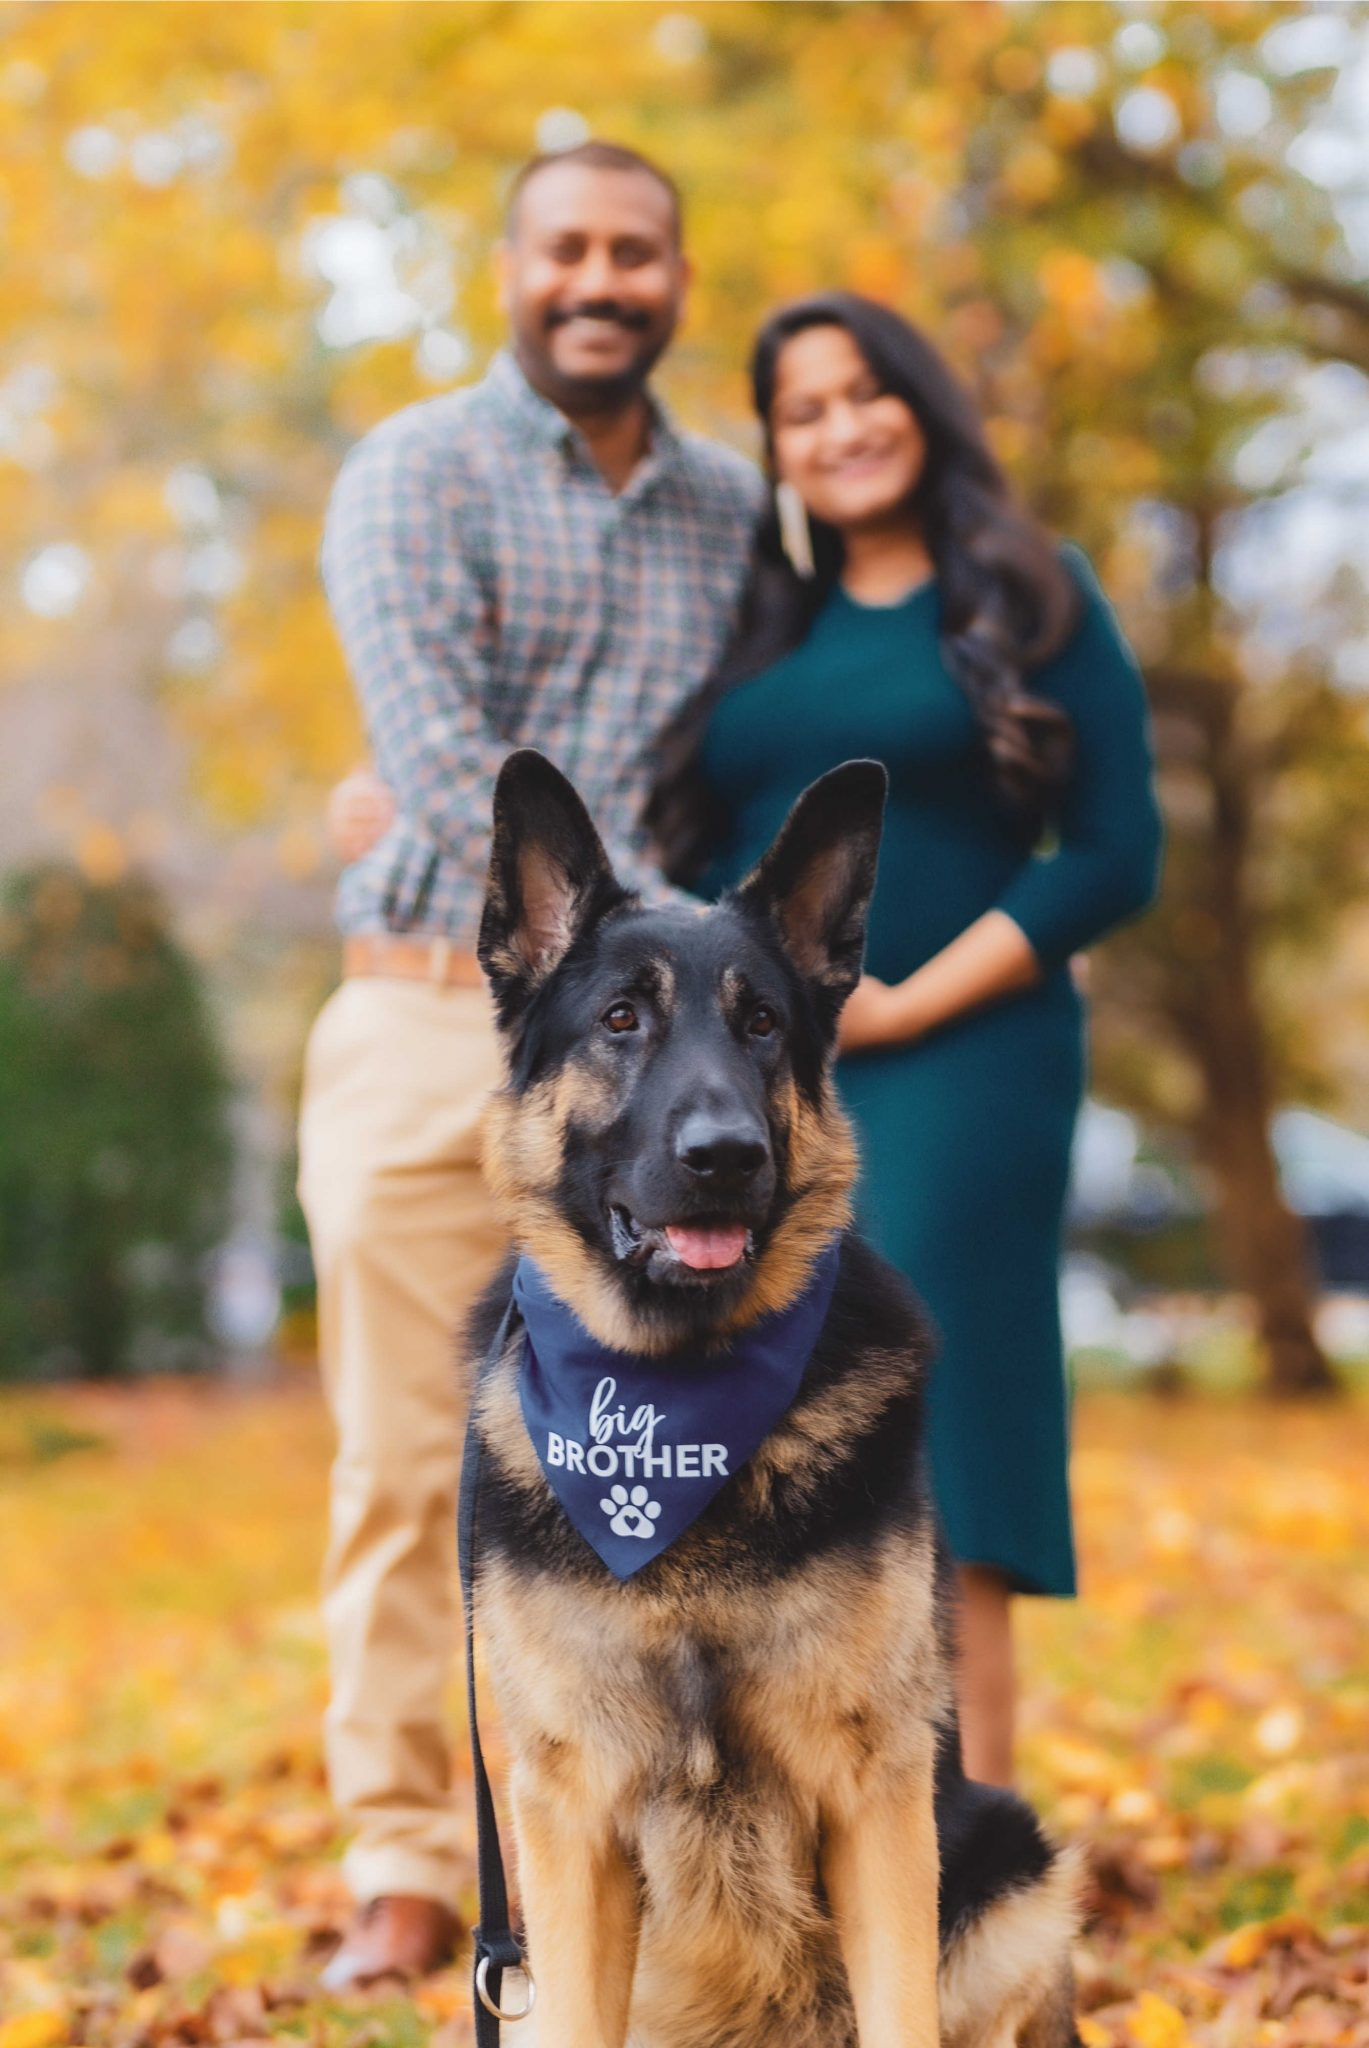 Fall Pregnancy Announcement by top Maryland life and style blogger, Dreaming Loud |Pregnancy Announcement by popular Maryland lifestyle blog, Dreaming Loud: image of a man wearing a blue and red plaid shirt and khaki pants and a pregnant woman wearing a blue maternity dress, statement earrings, and purple velvet shoes standing together behind their German Shepard dog that's wearing a 'Big Brother' bandana around his neck.